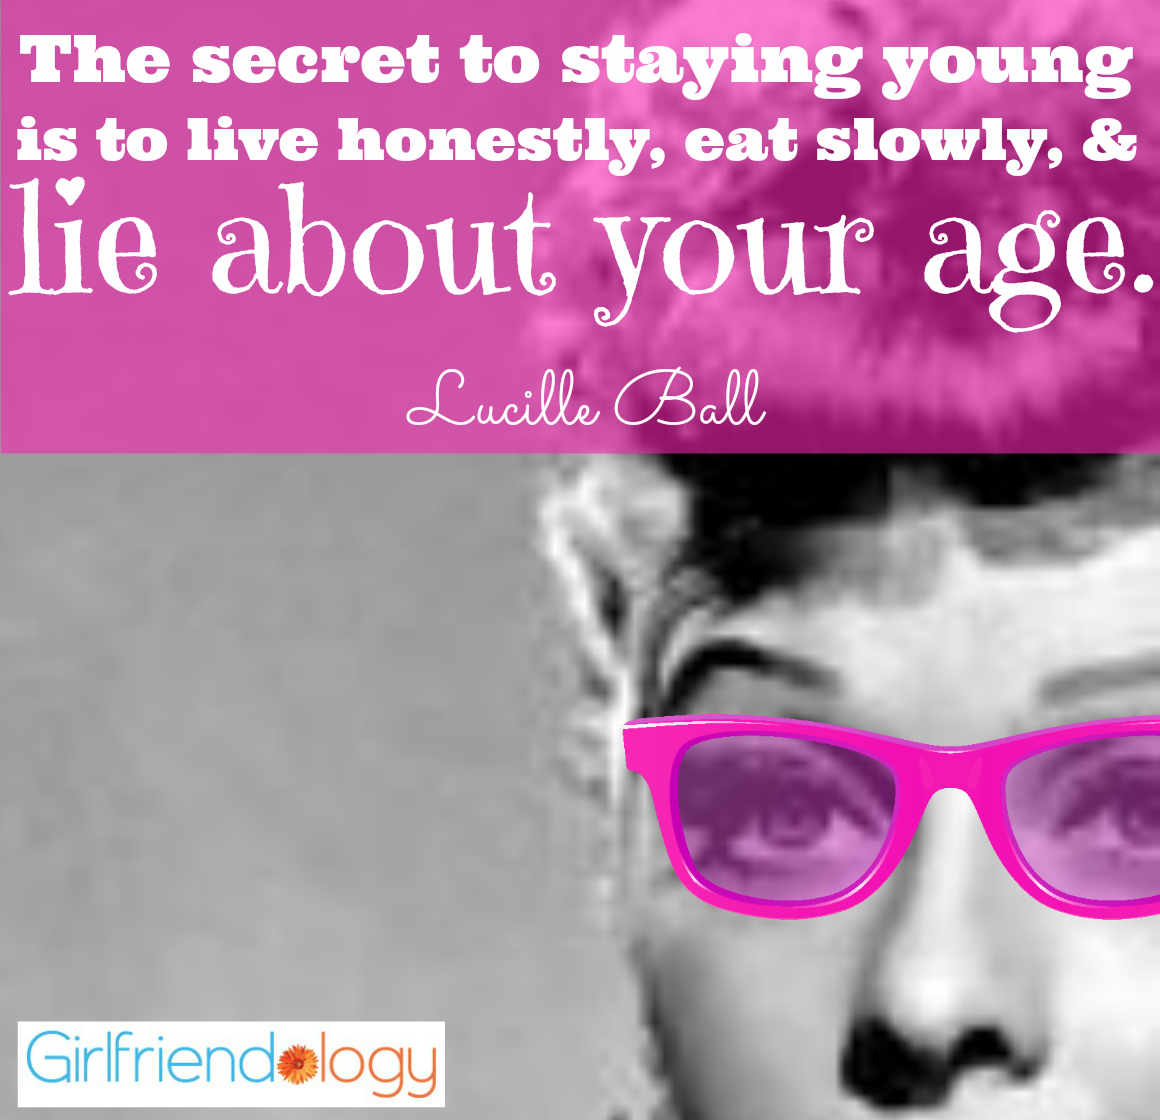 Lucille Ball Quotes Funny Birthday Quotes For Women Quotesgram